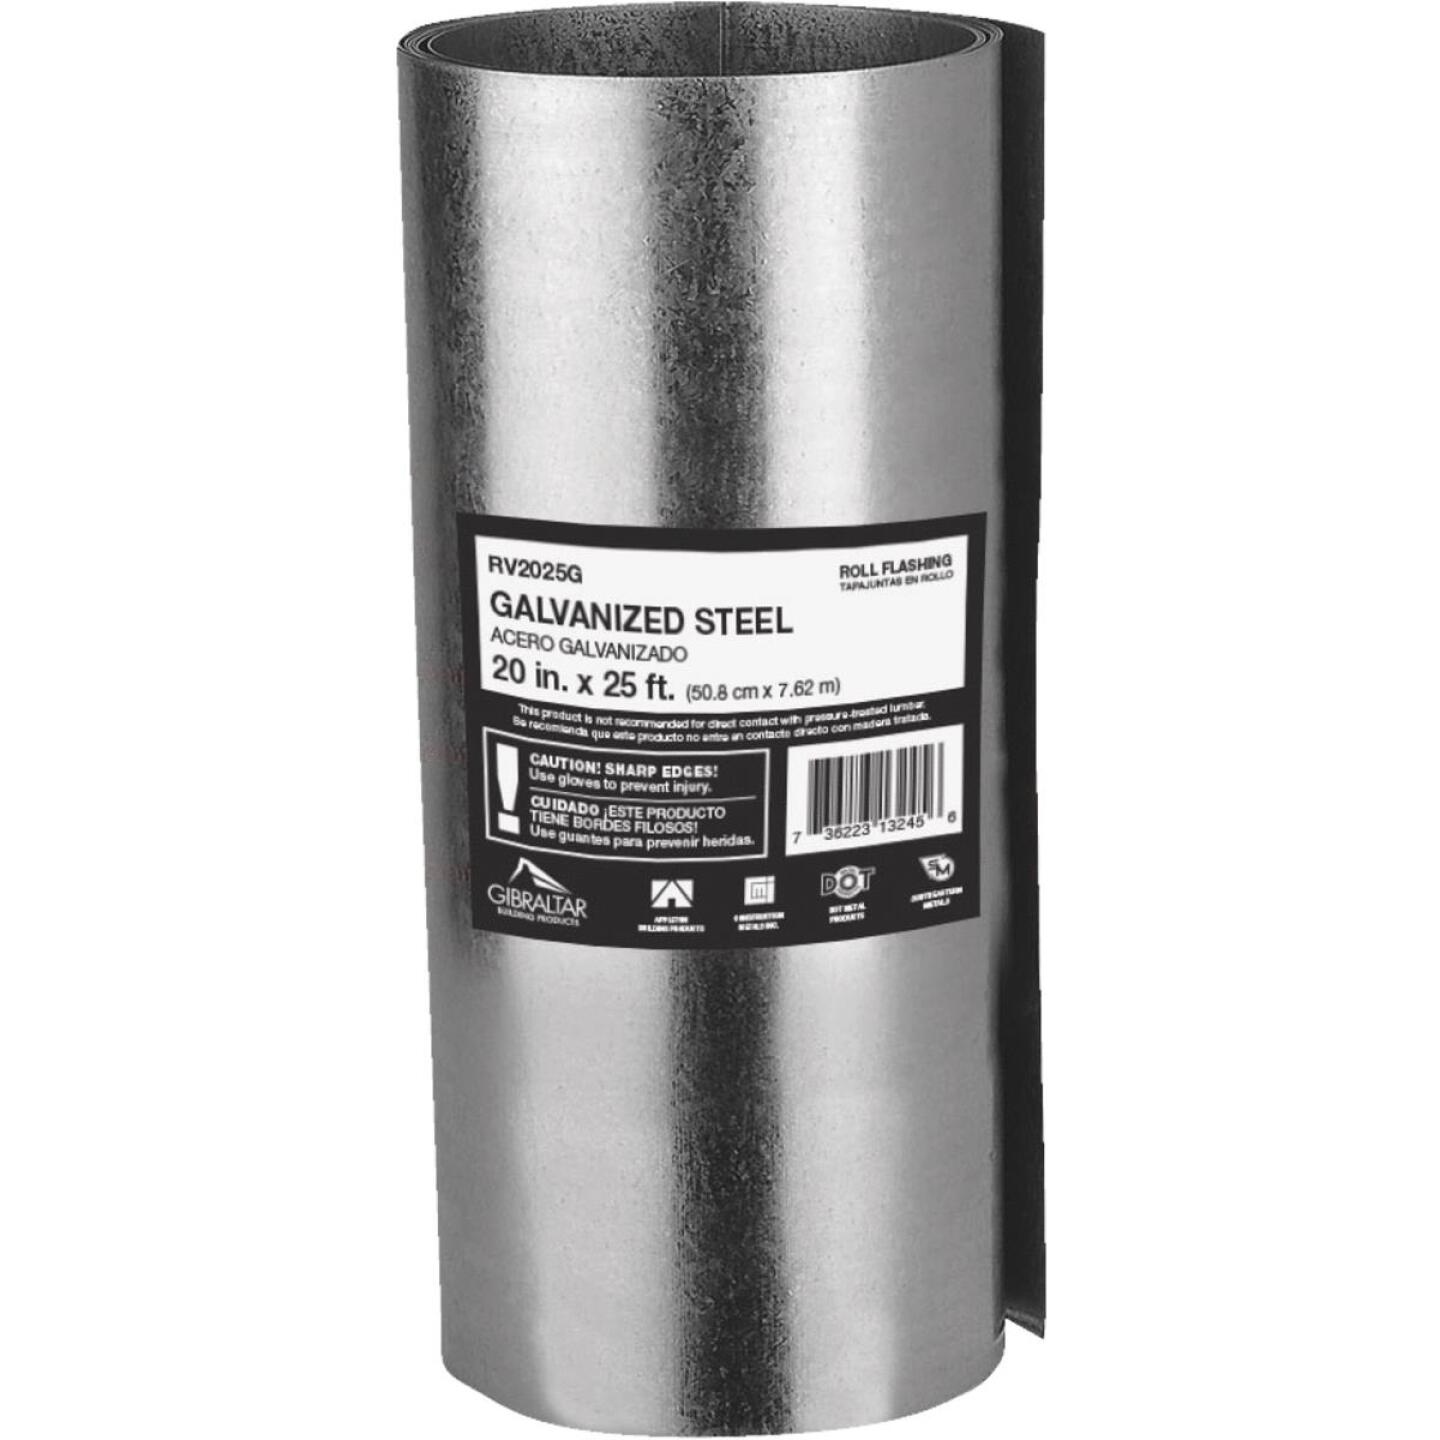 NorWesco 20 In. x 25 Ft. Mill Galvanized Roll Valley Flashing Image 1